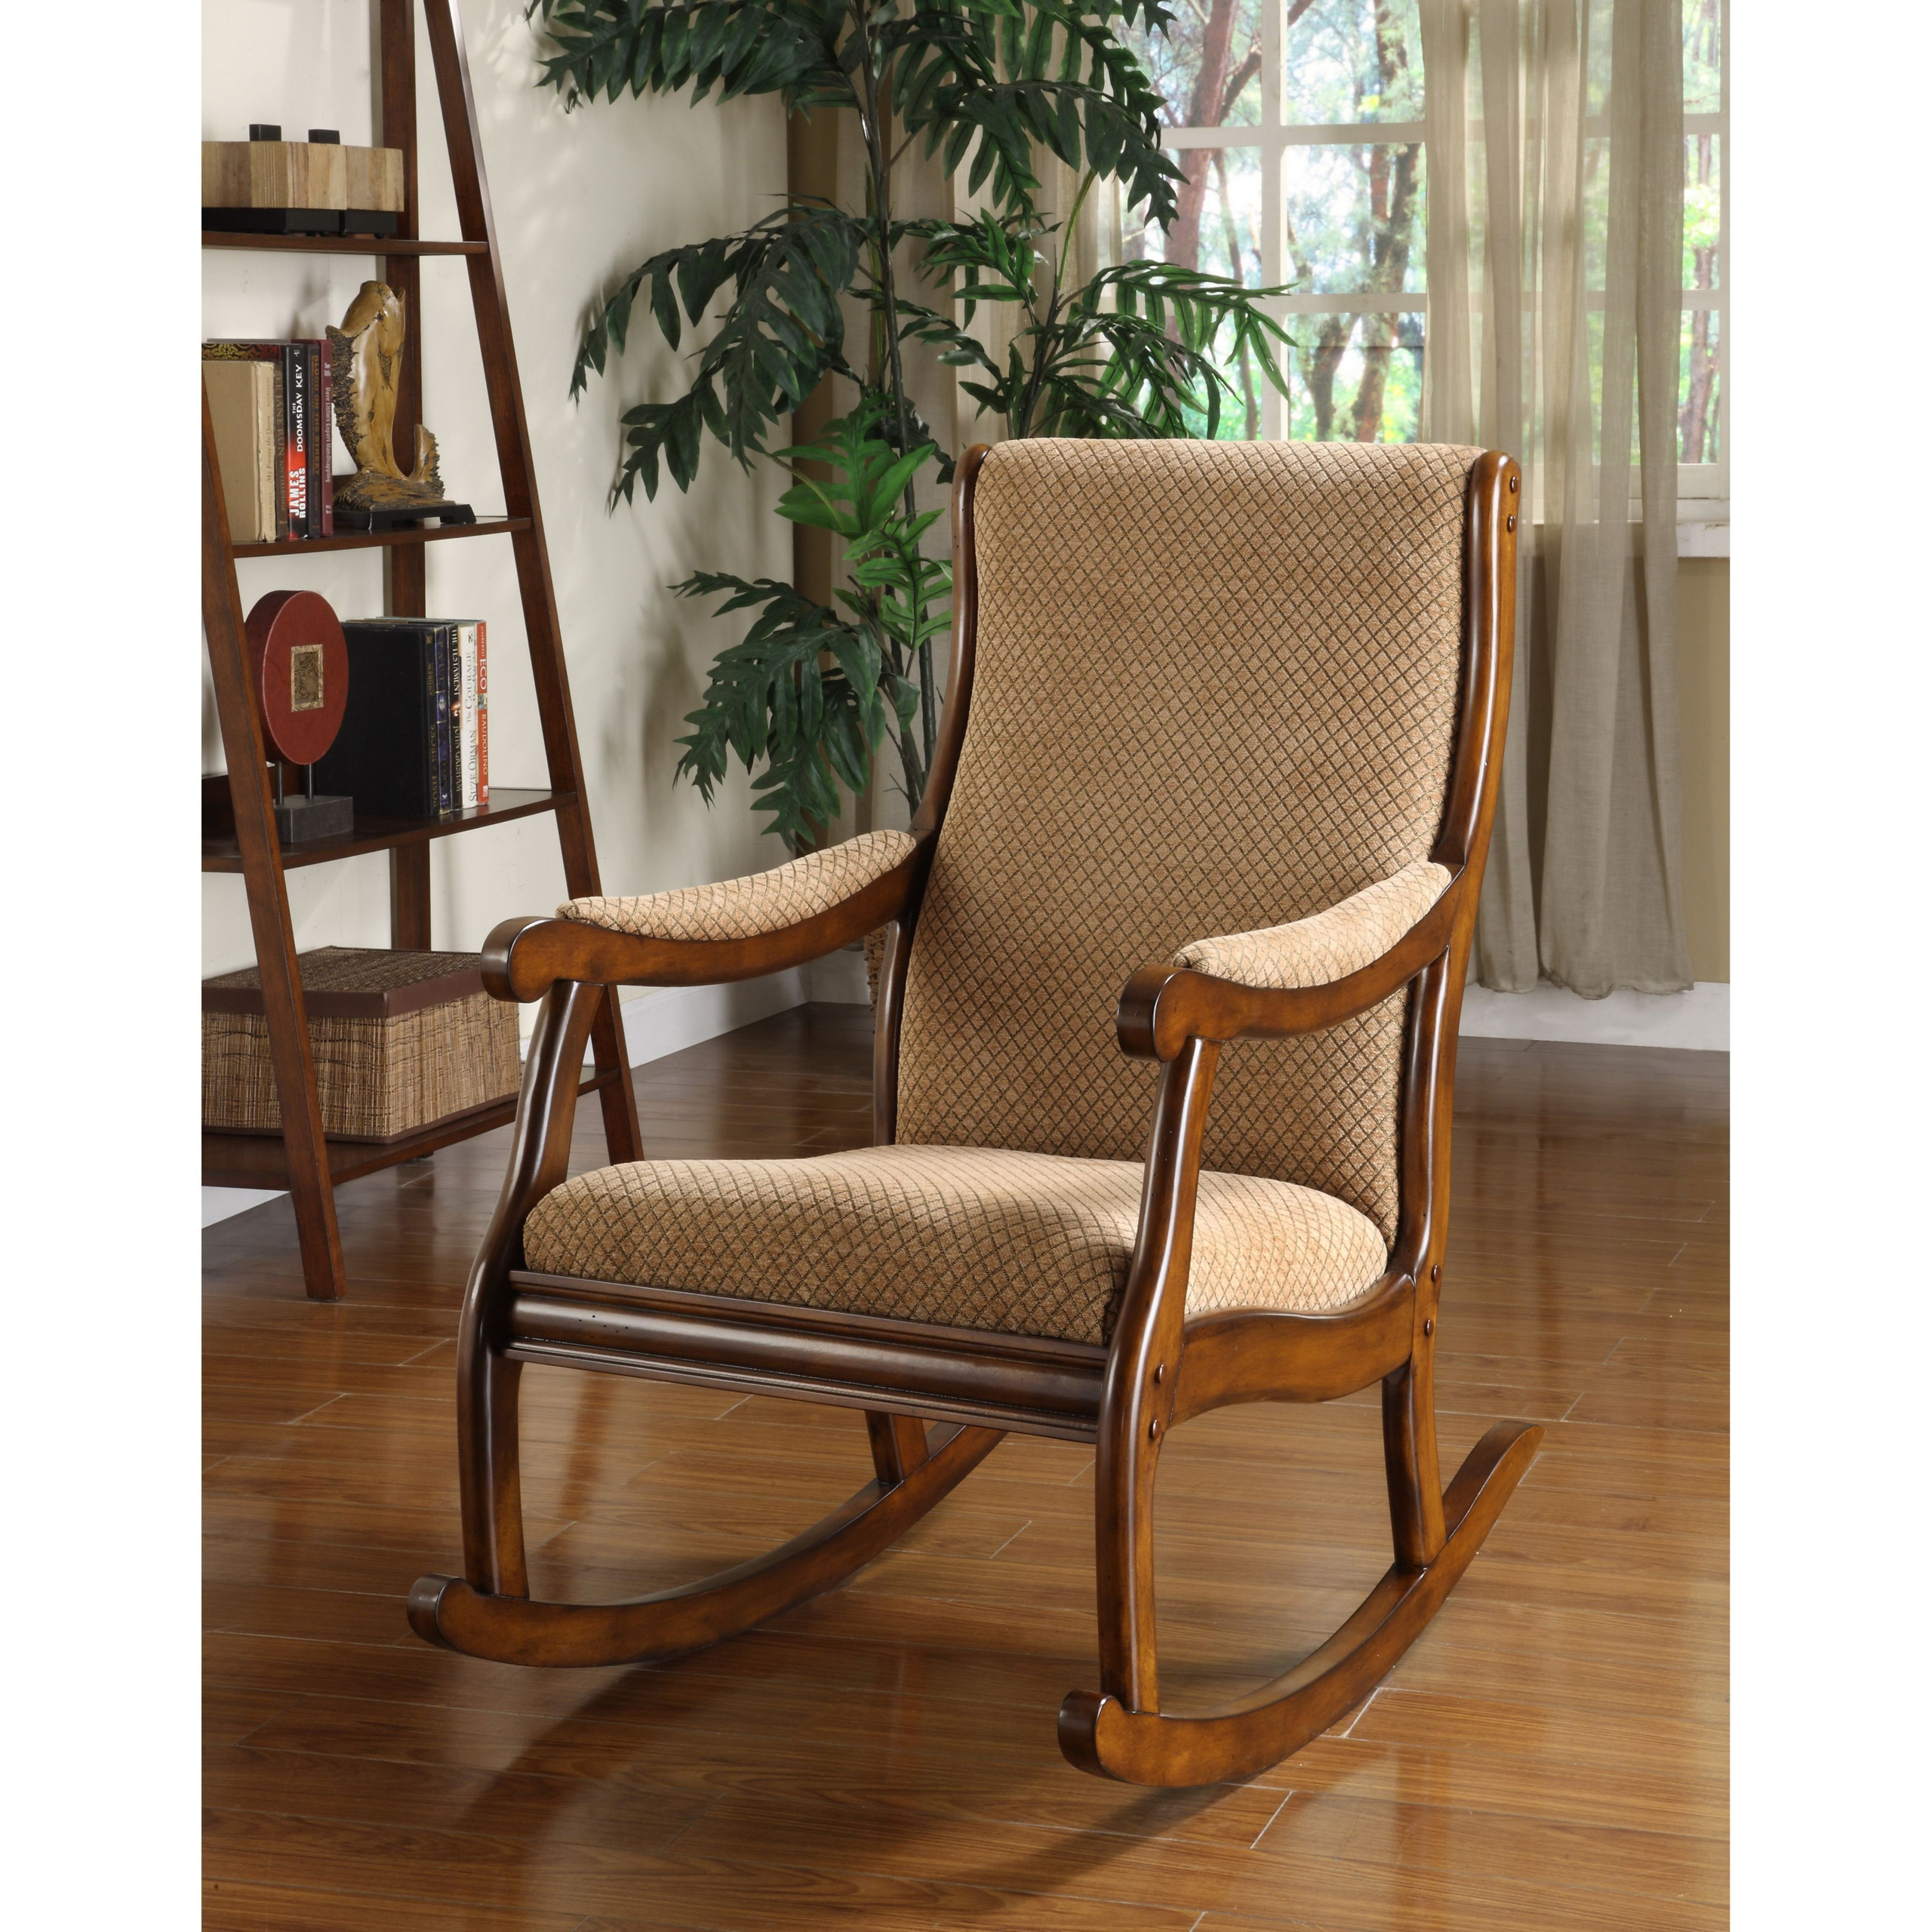 Charmant Affordable Modern Rocking Chair